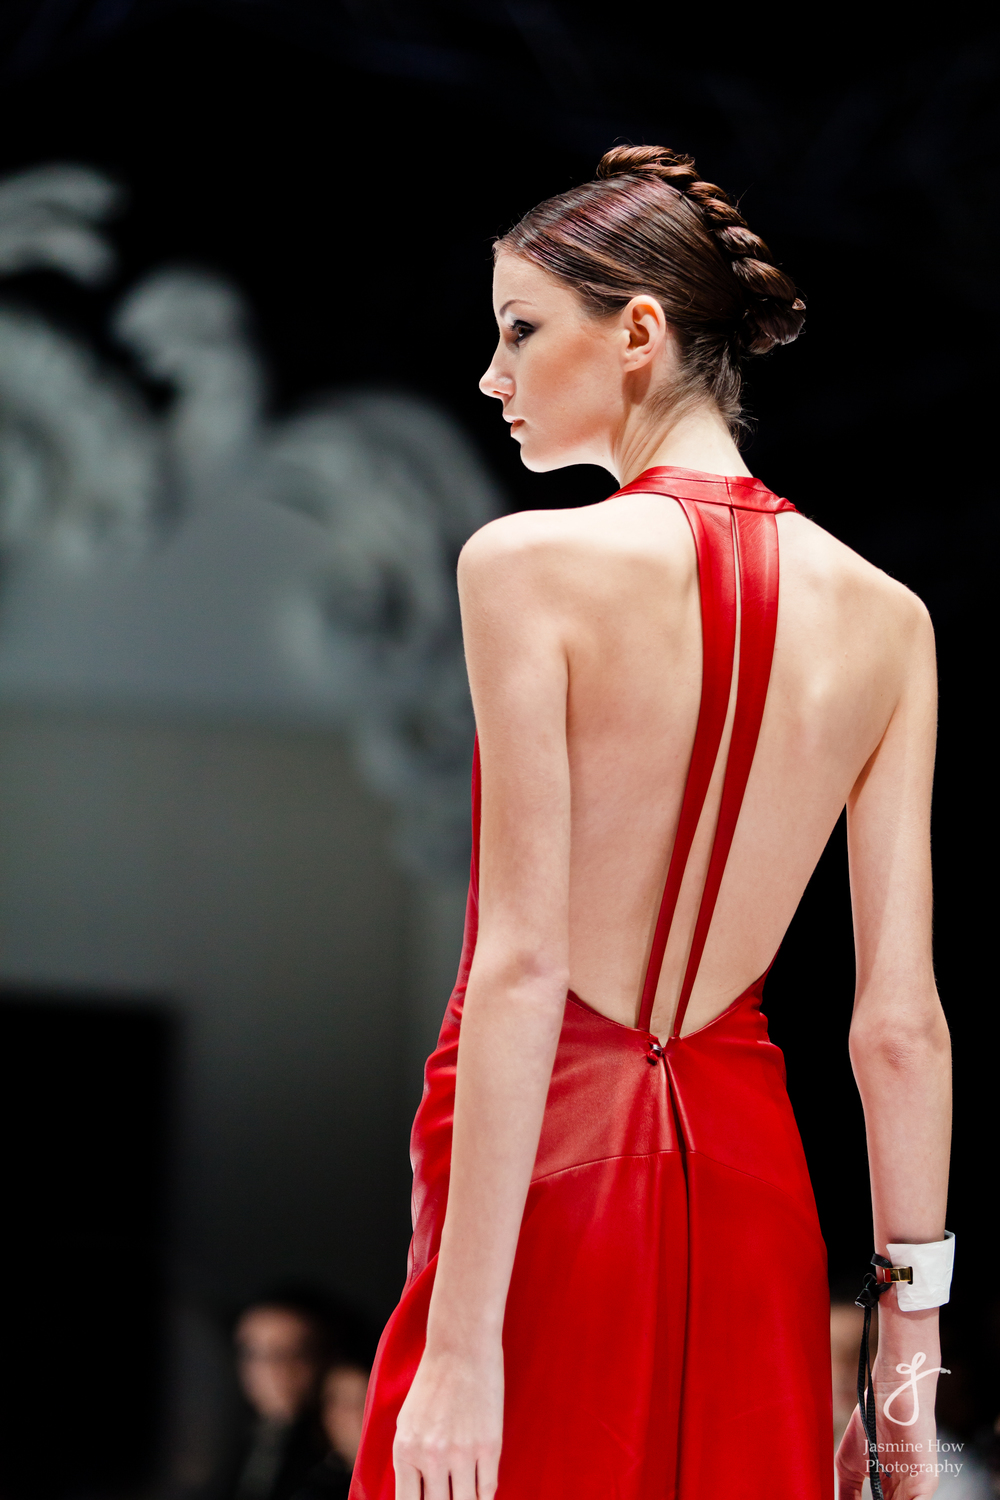 Fide Fashion Week - Atelier Gustavolins - 018.jpg